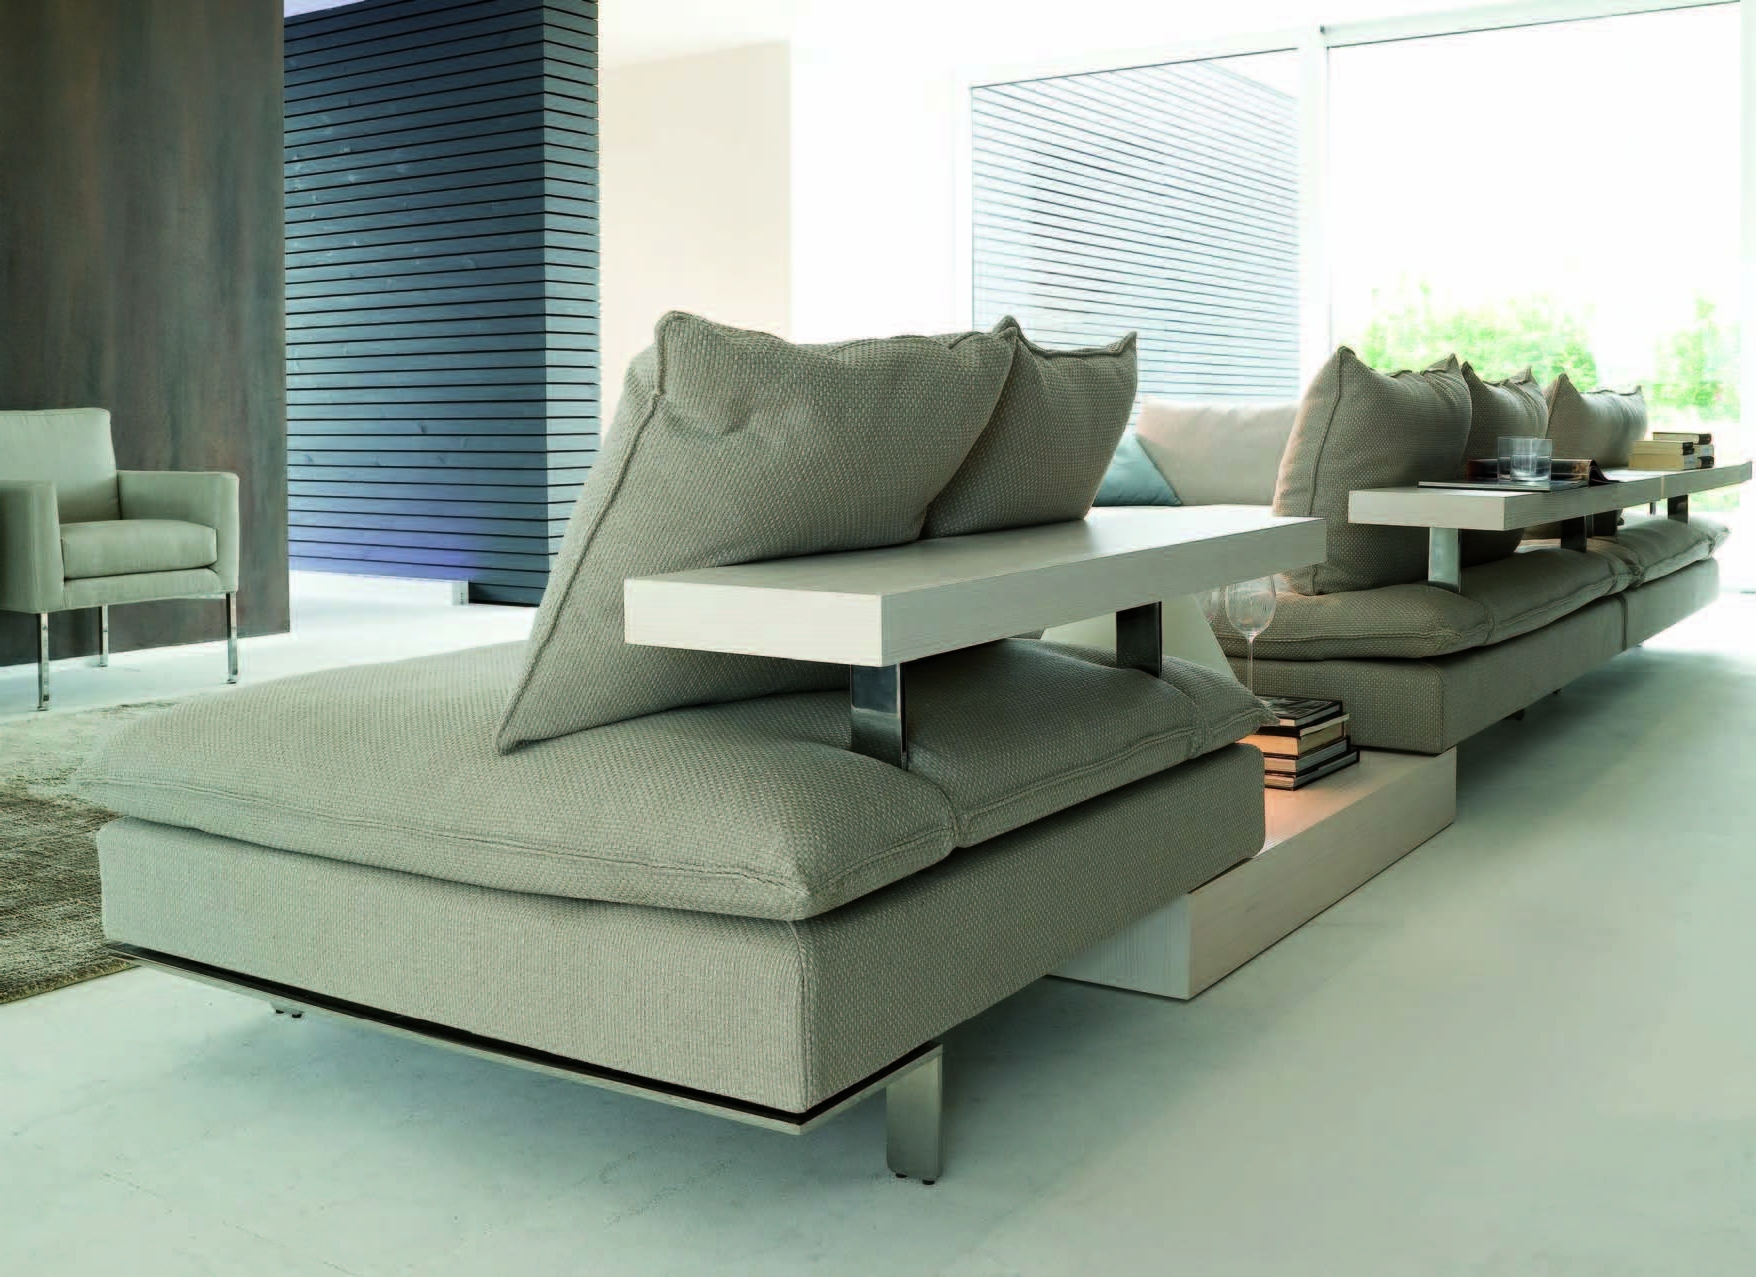 Newest Italian Furniture,modern Furniture,contemporary Furniture – Modern With Regard To Bedroom Sofas And Chairs (View 20 of 20)